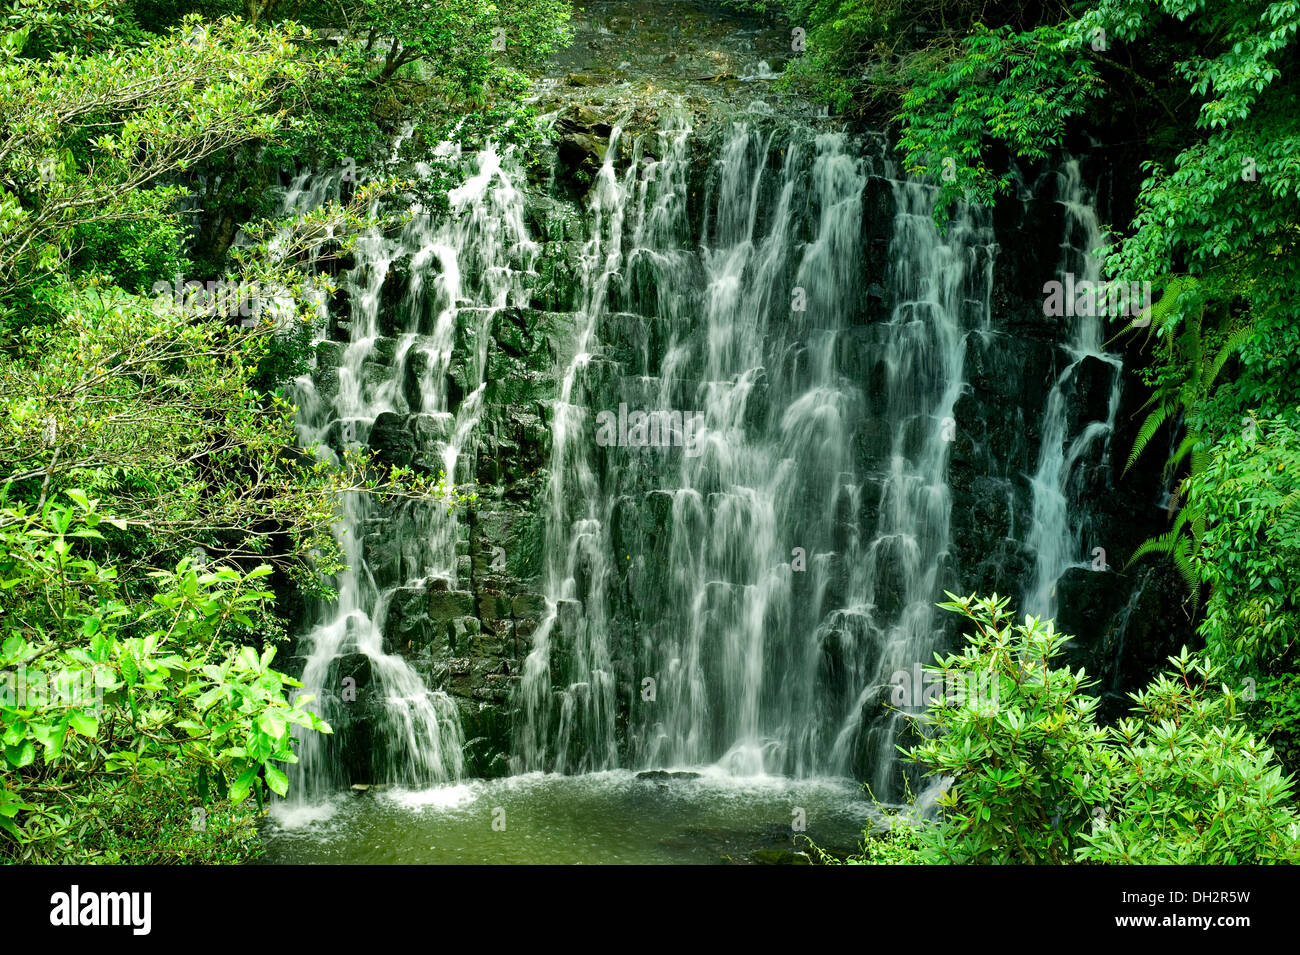 Stock Nature Footage Free